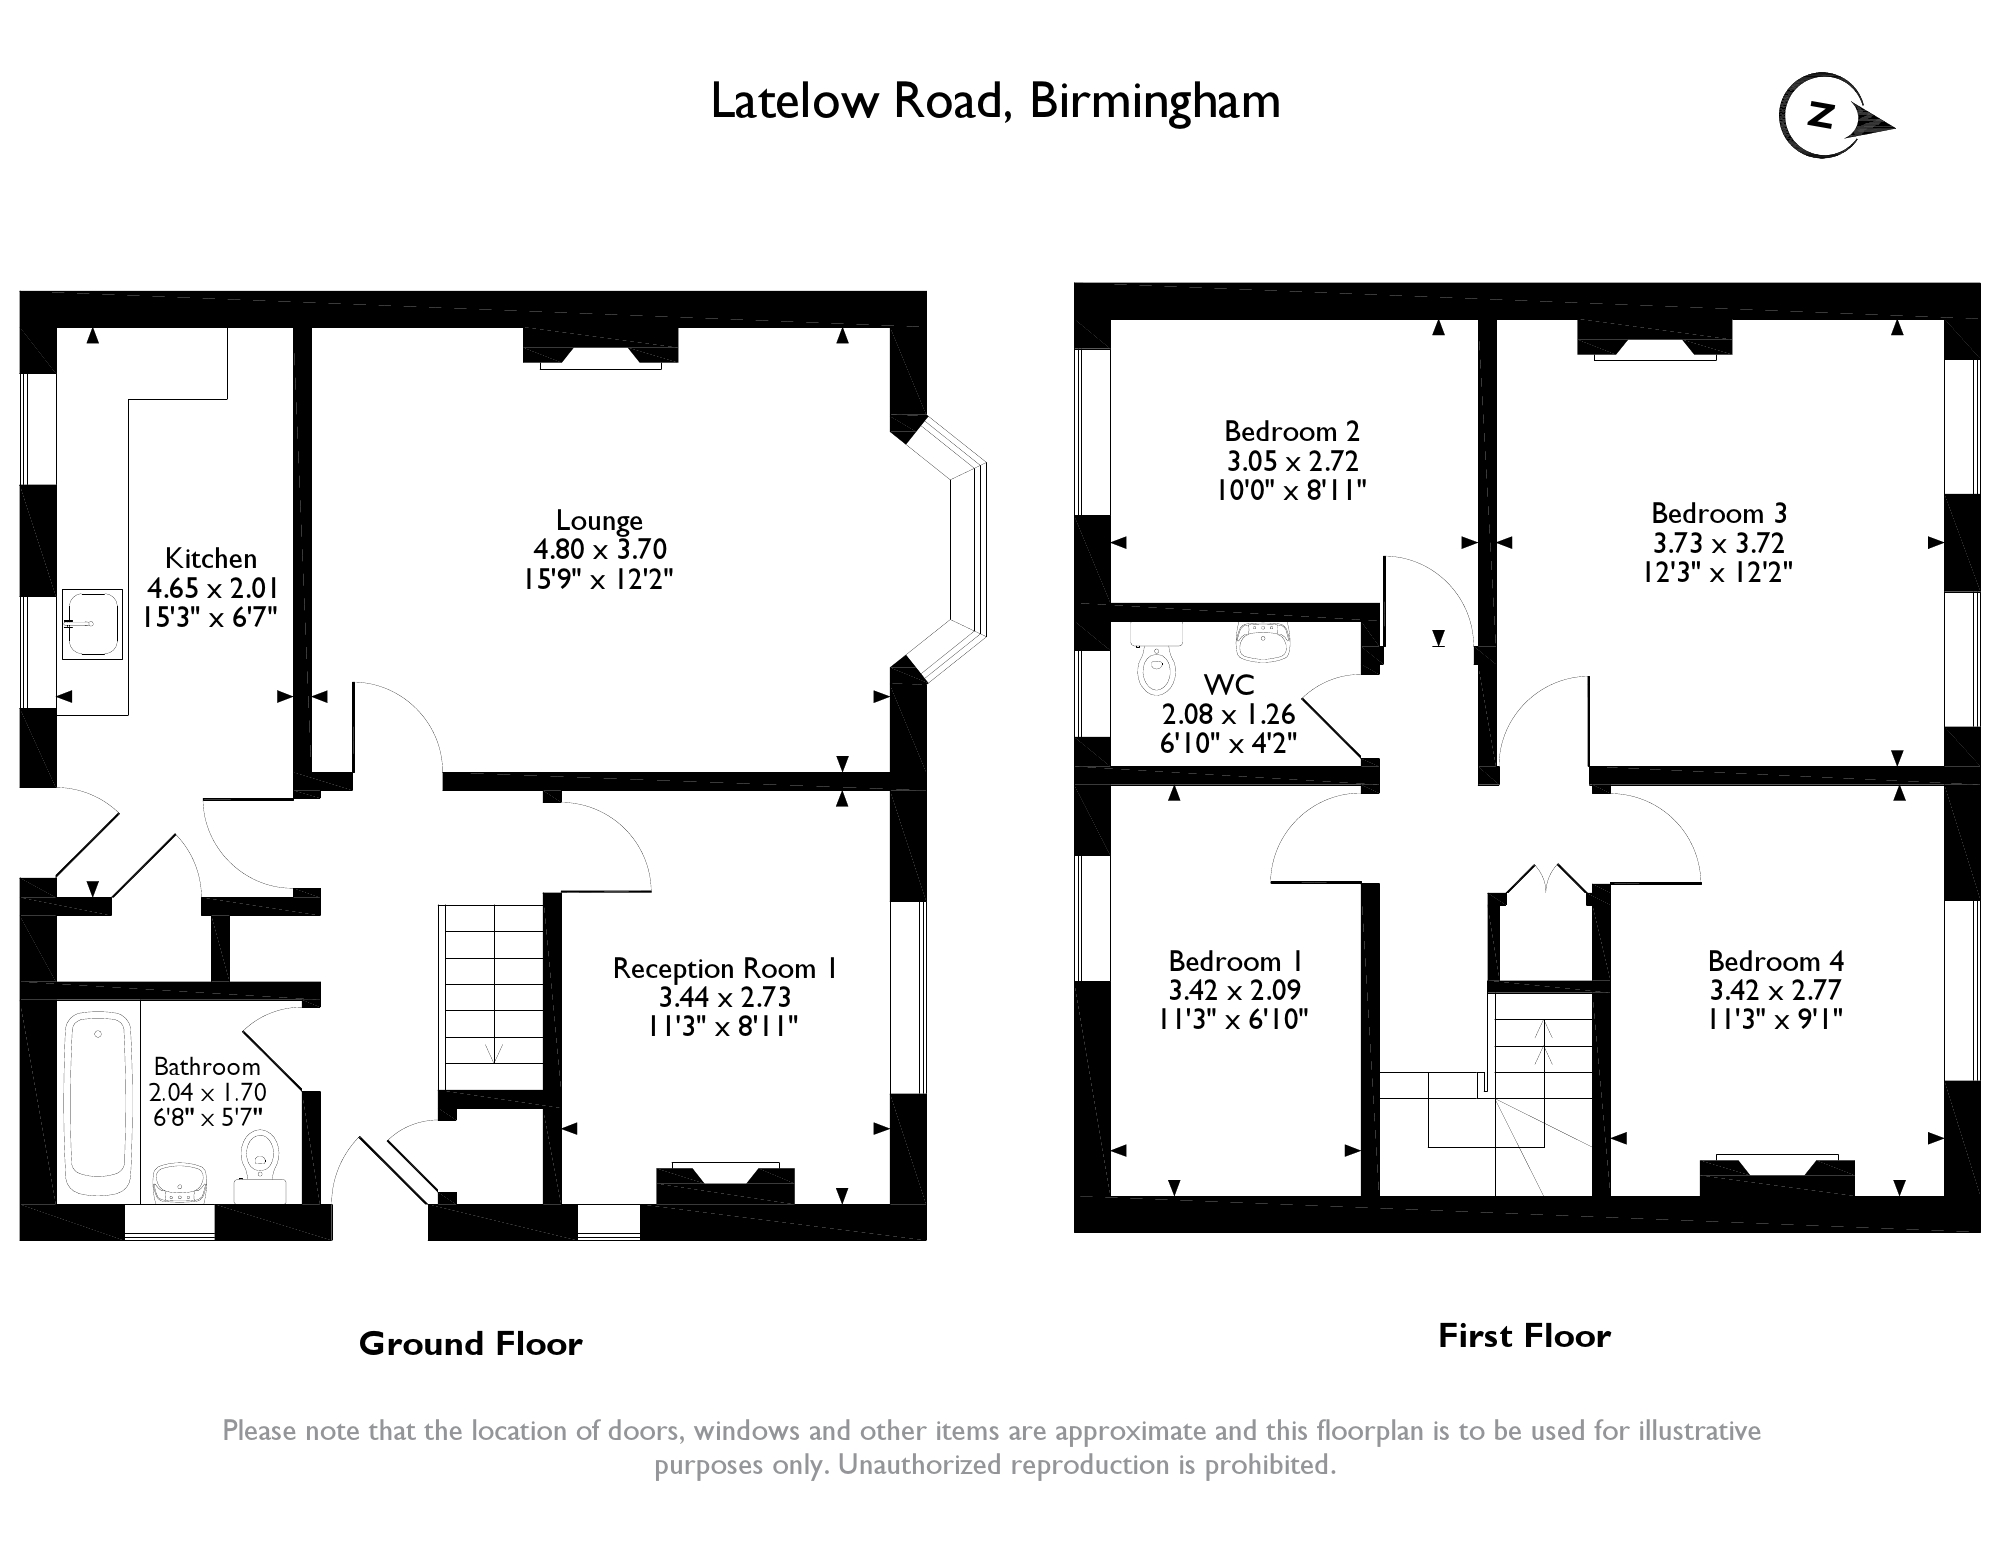 Latelow Road,Birmingham, B33 floor plan